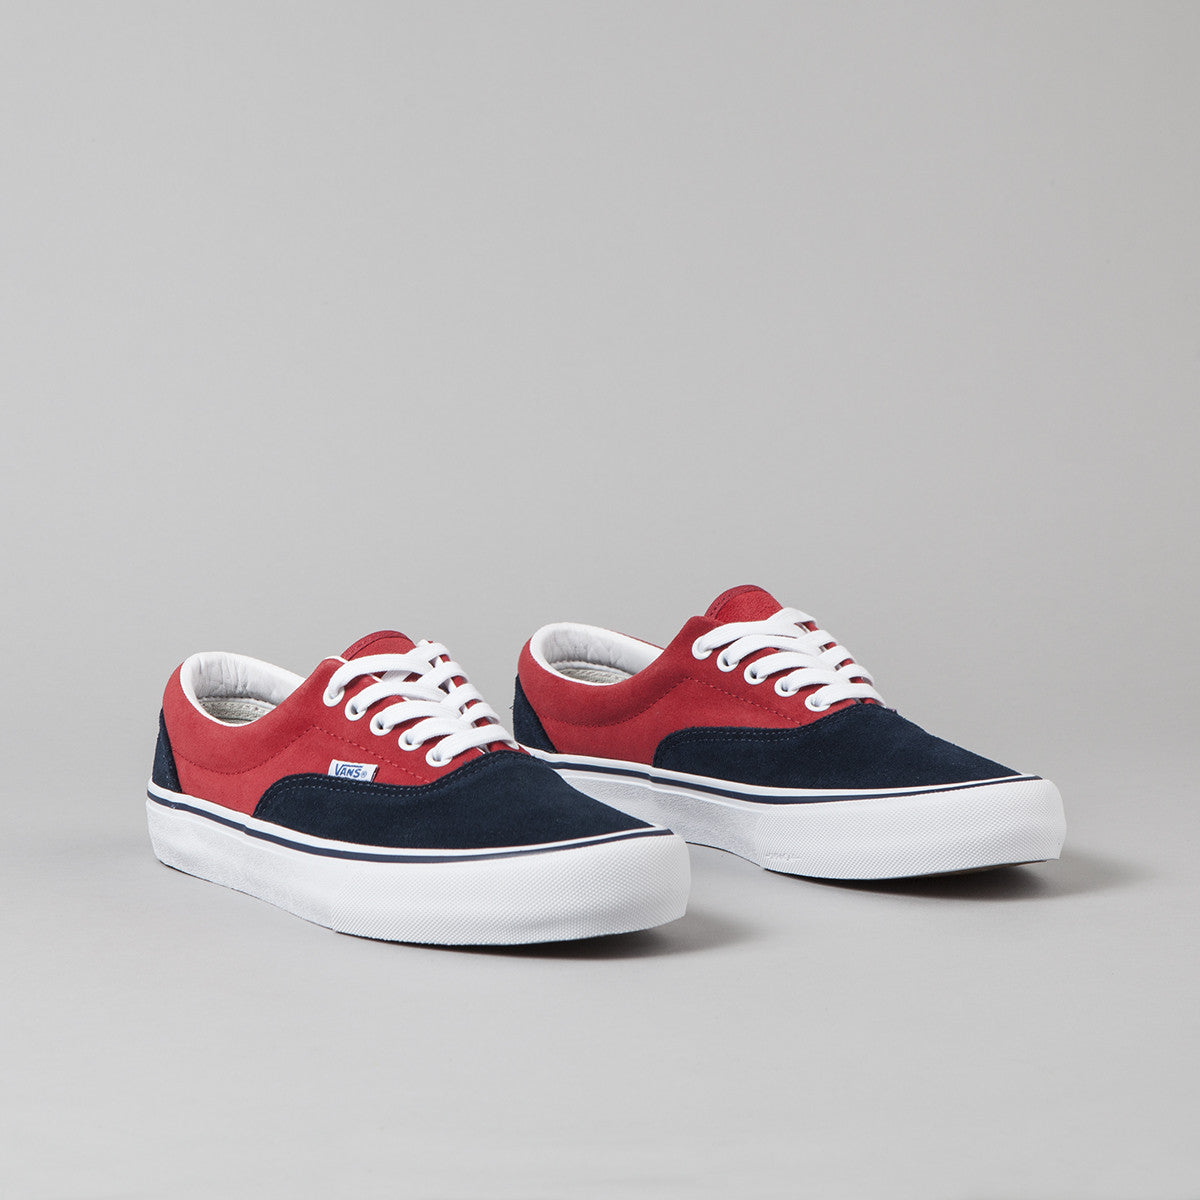 Vans 50th Era Pro '76 Shoes - Navy / Red